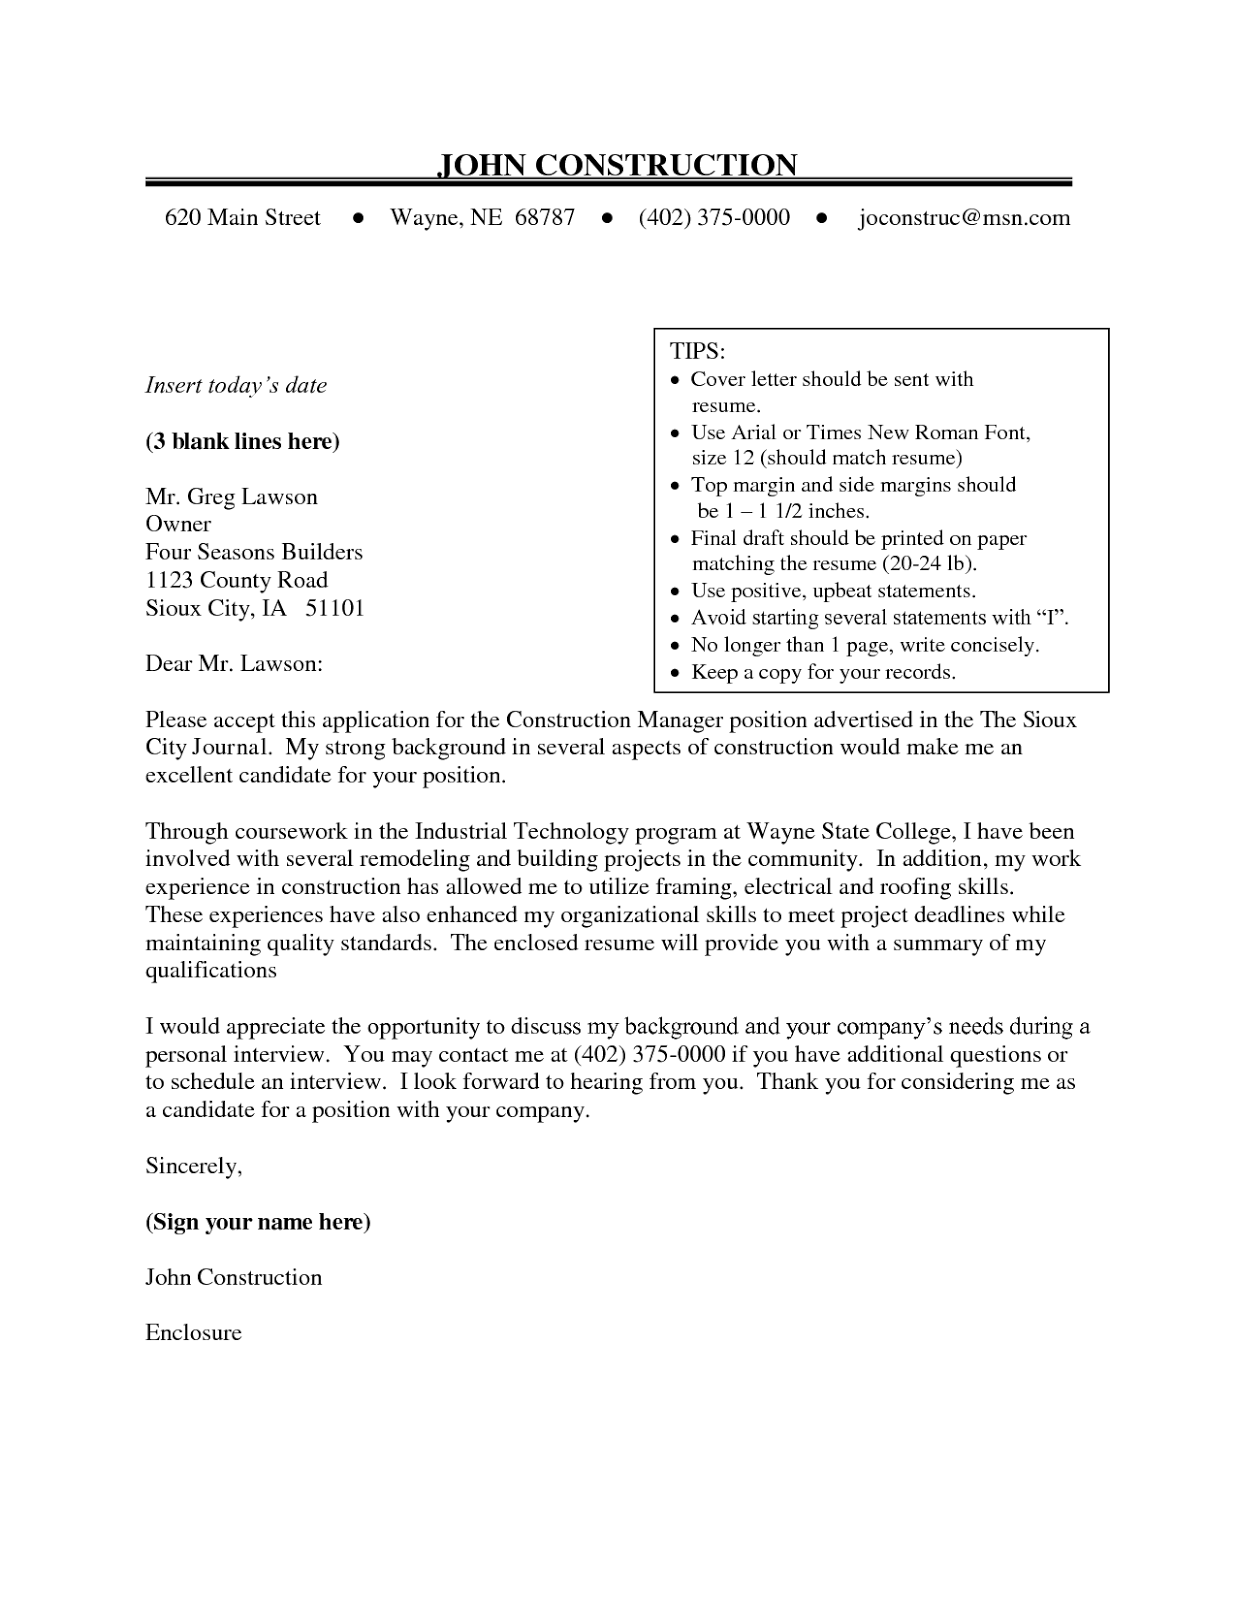 example cover letter templates resume and cover letter templates example cover letter templates resume and cover letter templates - Sample Cv Covering Letter